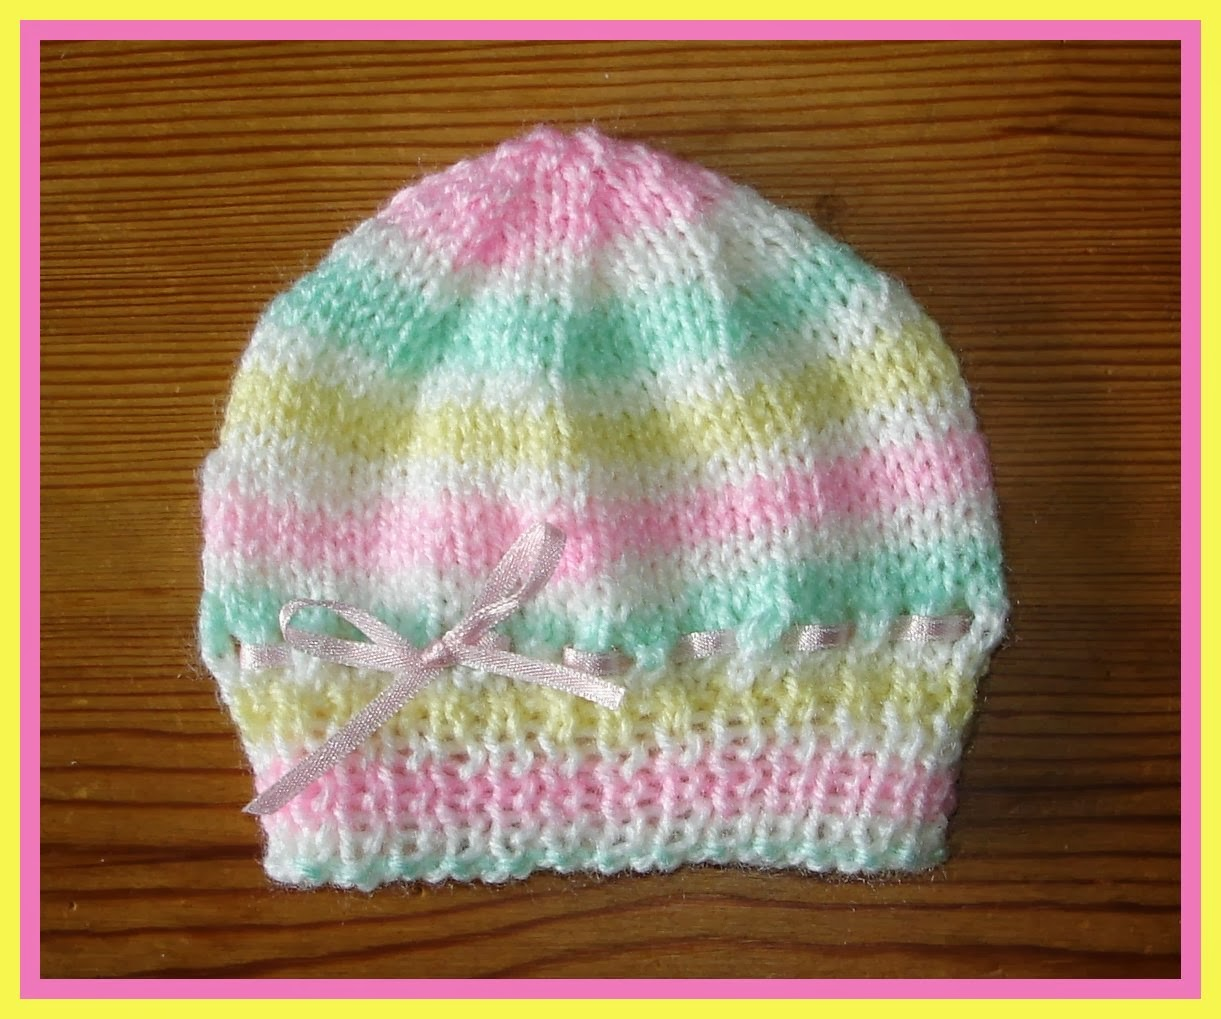 Christmas Star Knitting Pattern : mariannas lazy daisy days: Candystripe Knitted Baby Hats